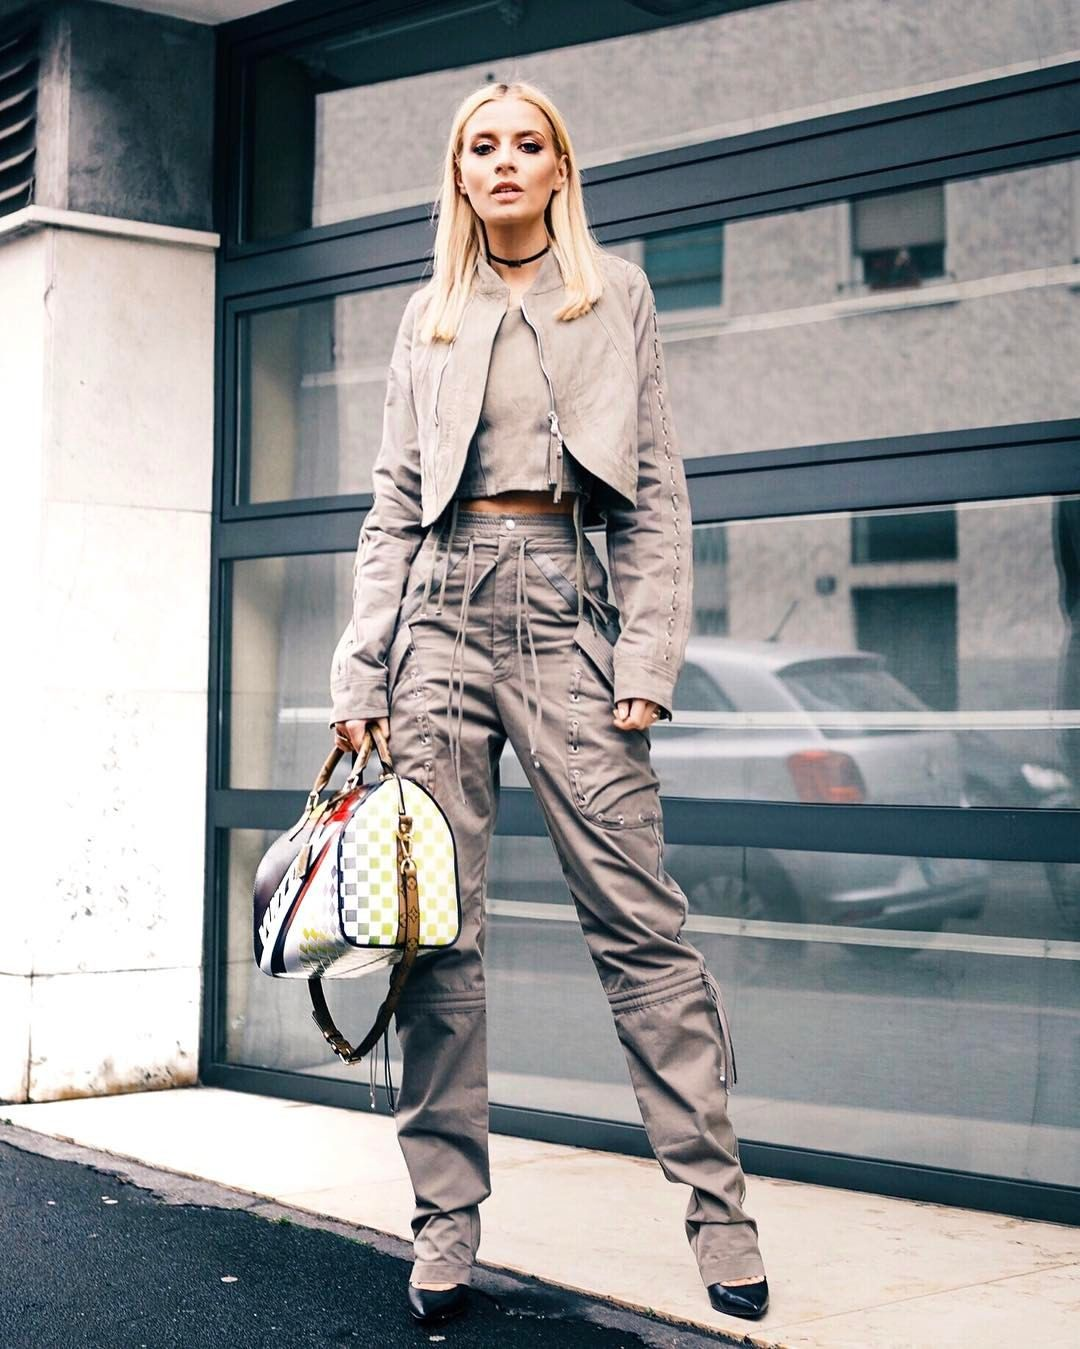 Pin by Gisella on Street Style | Street style, Fashion